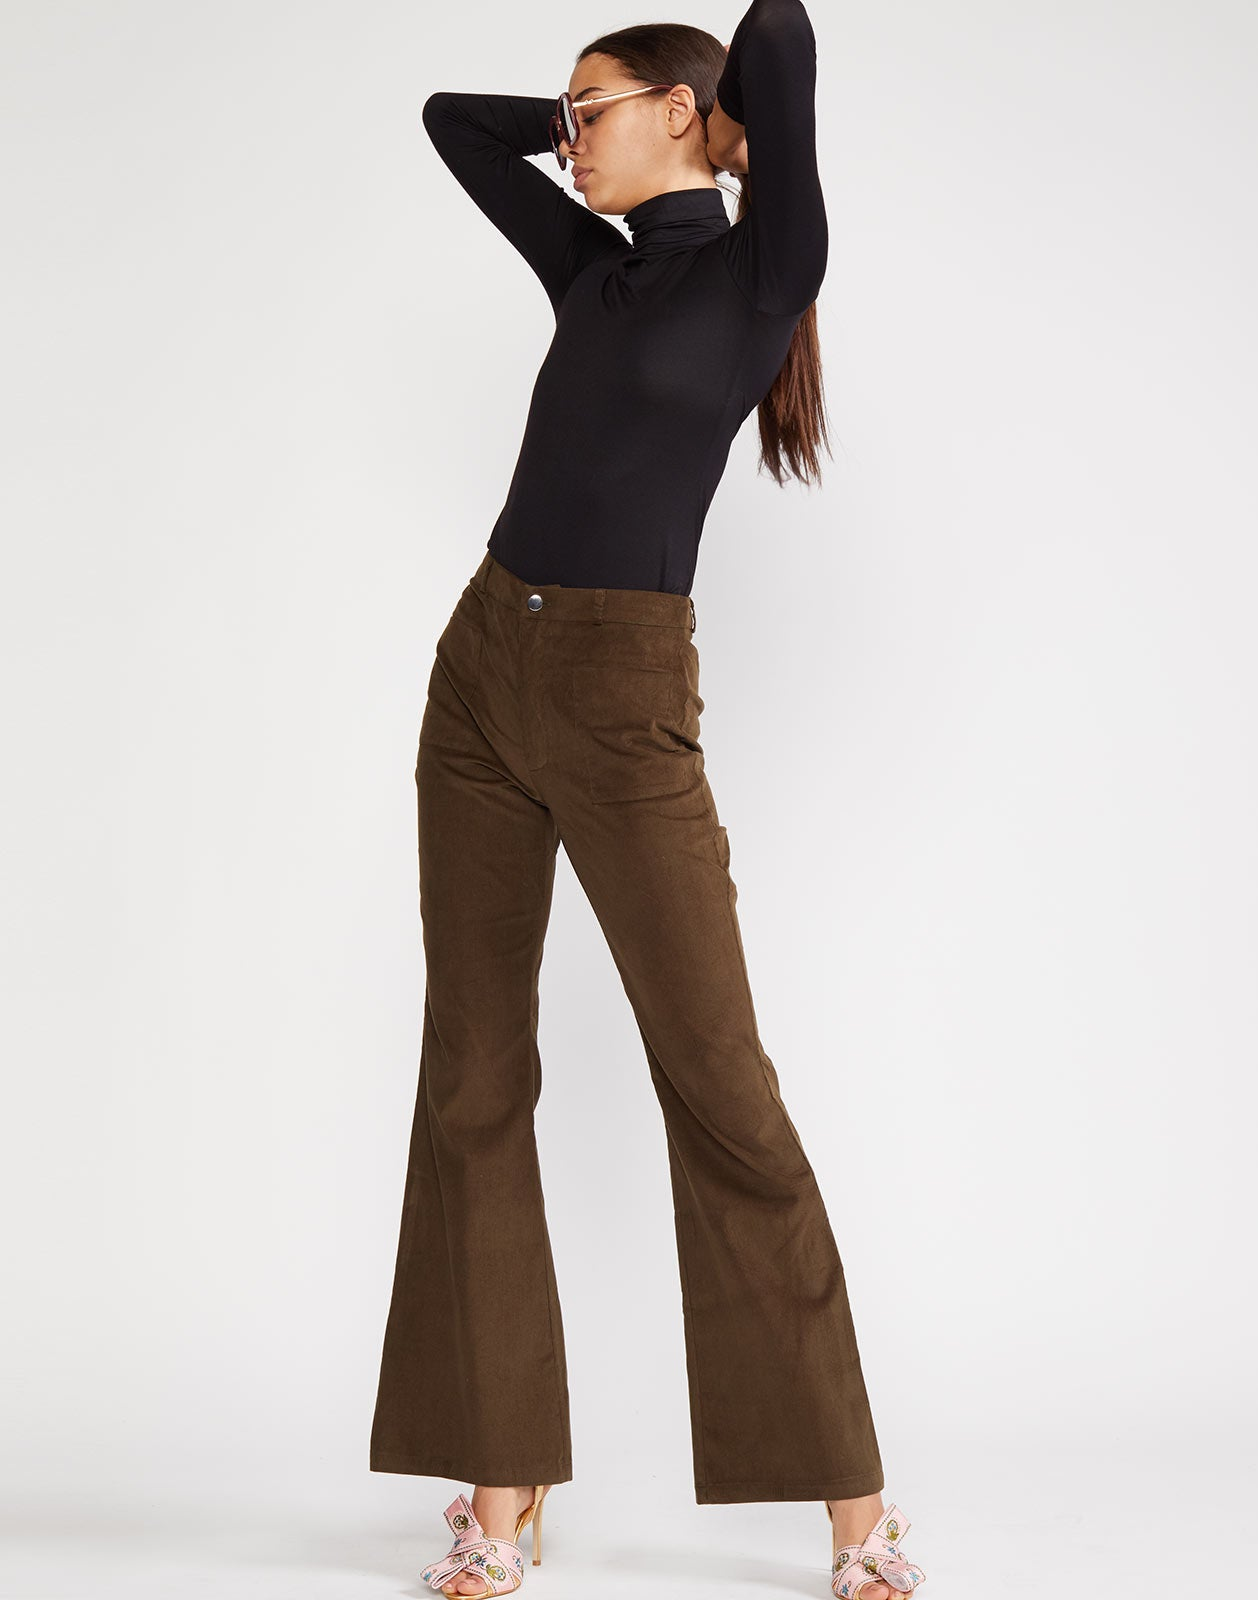 High rise baby corduroy flare pant